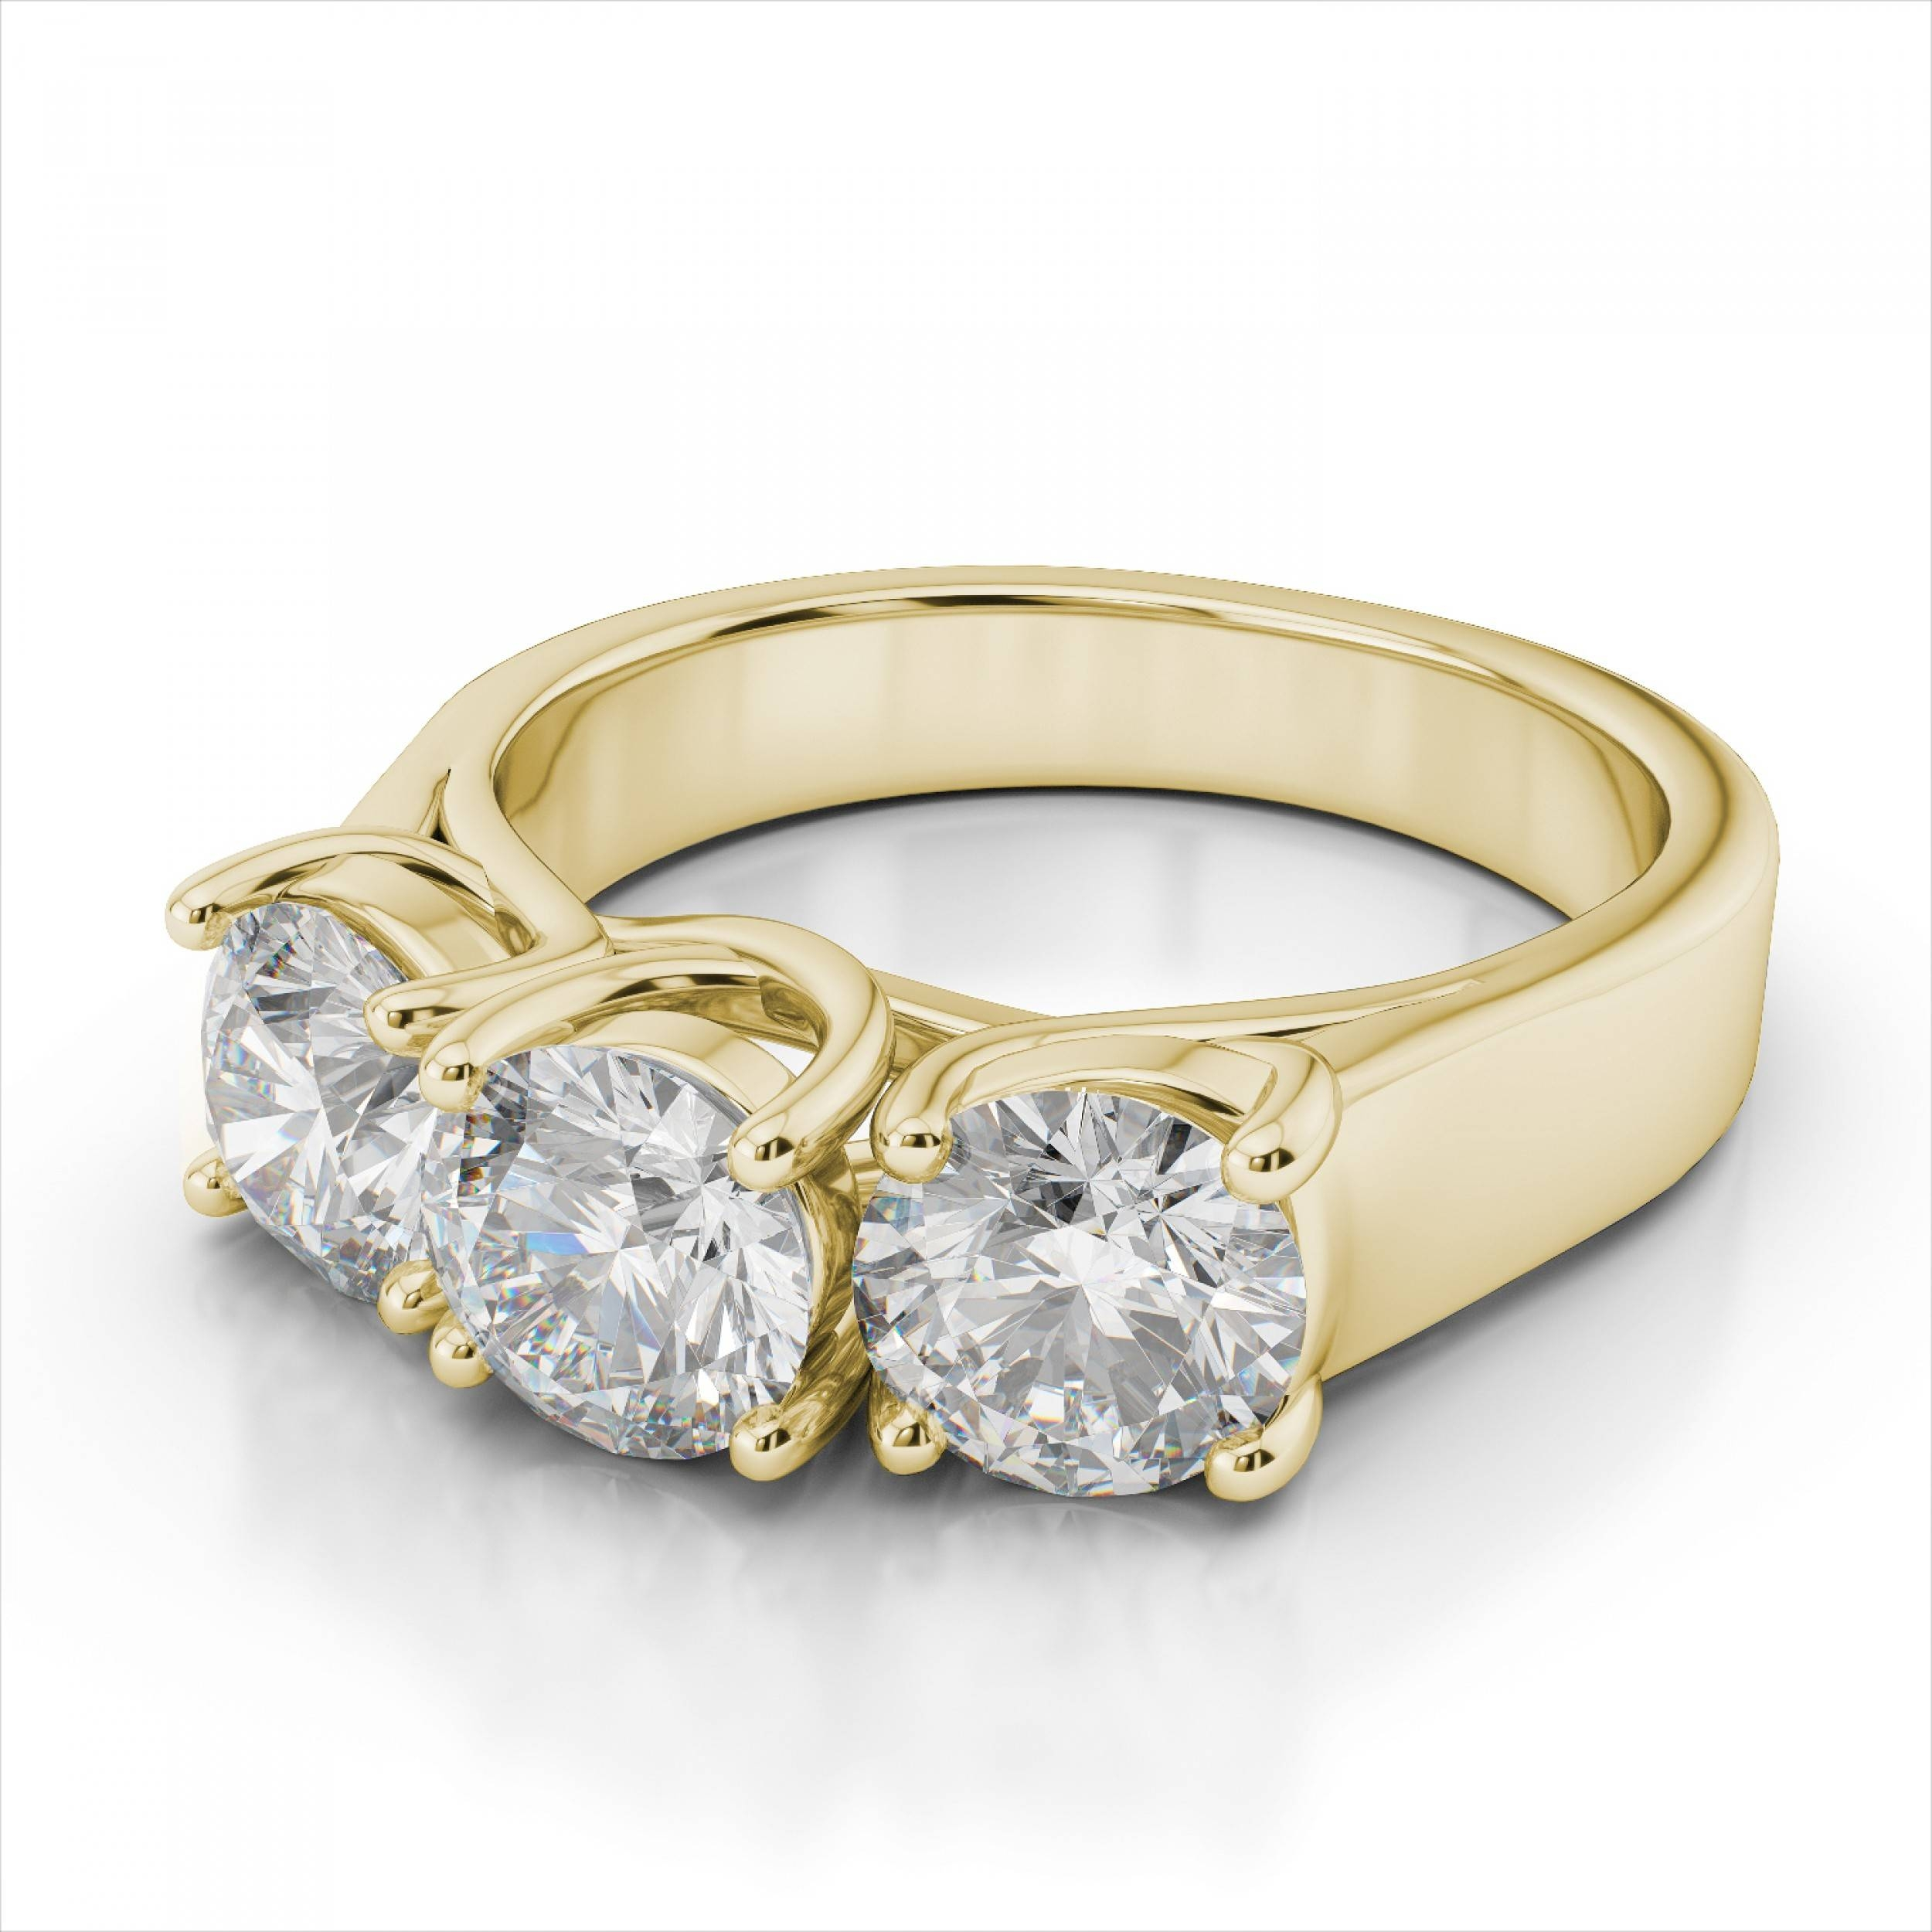 Stone Round Diamond Trellis Engagement Ring In 18K Yellow Gold Intended For Engagement Rings With Yellow Stone (View 11 of 15)